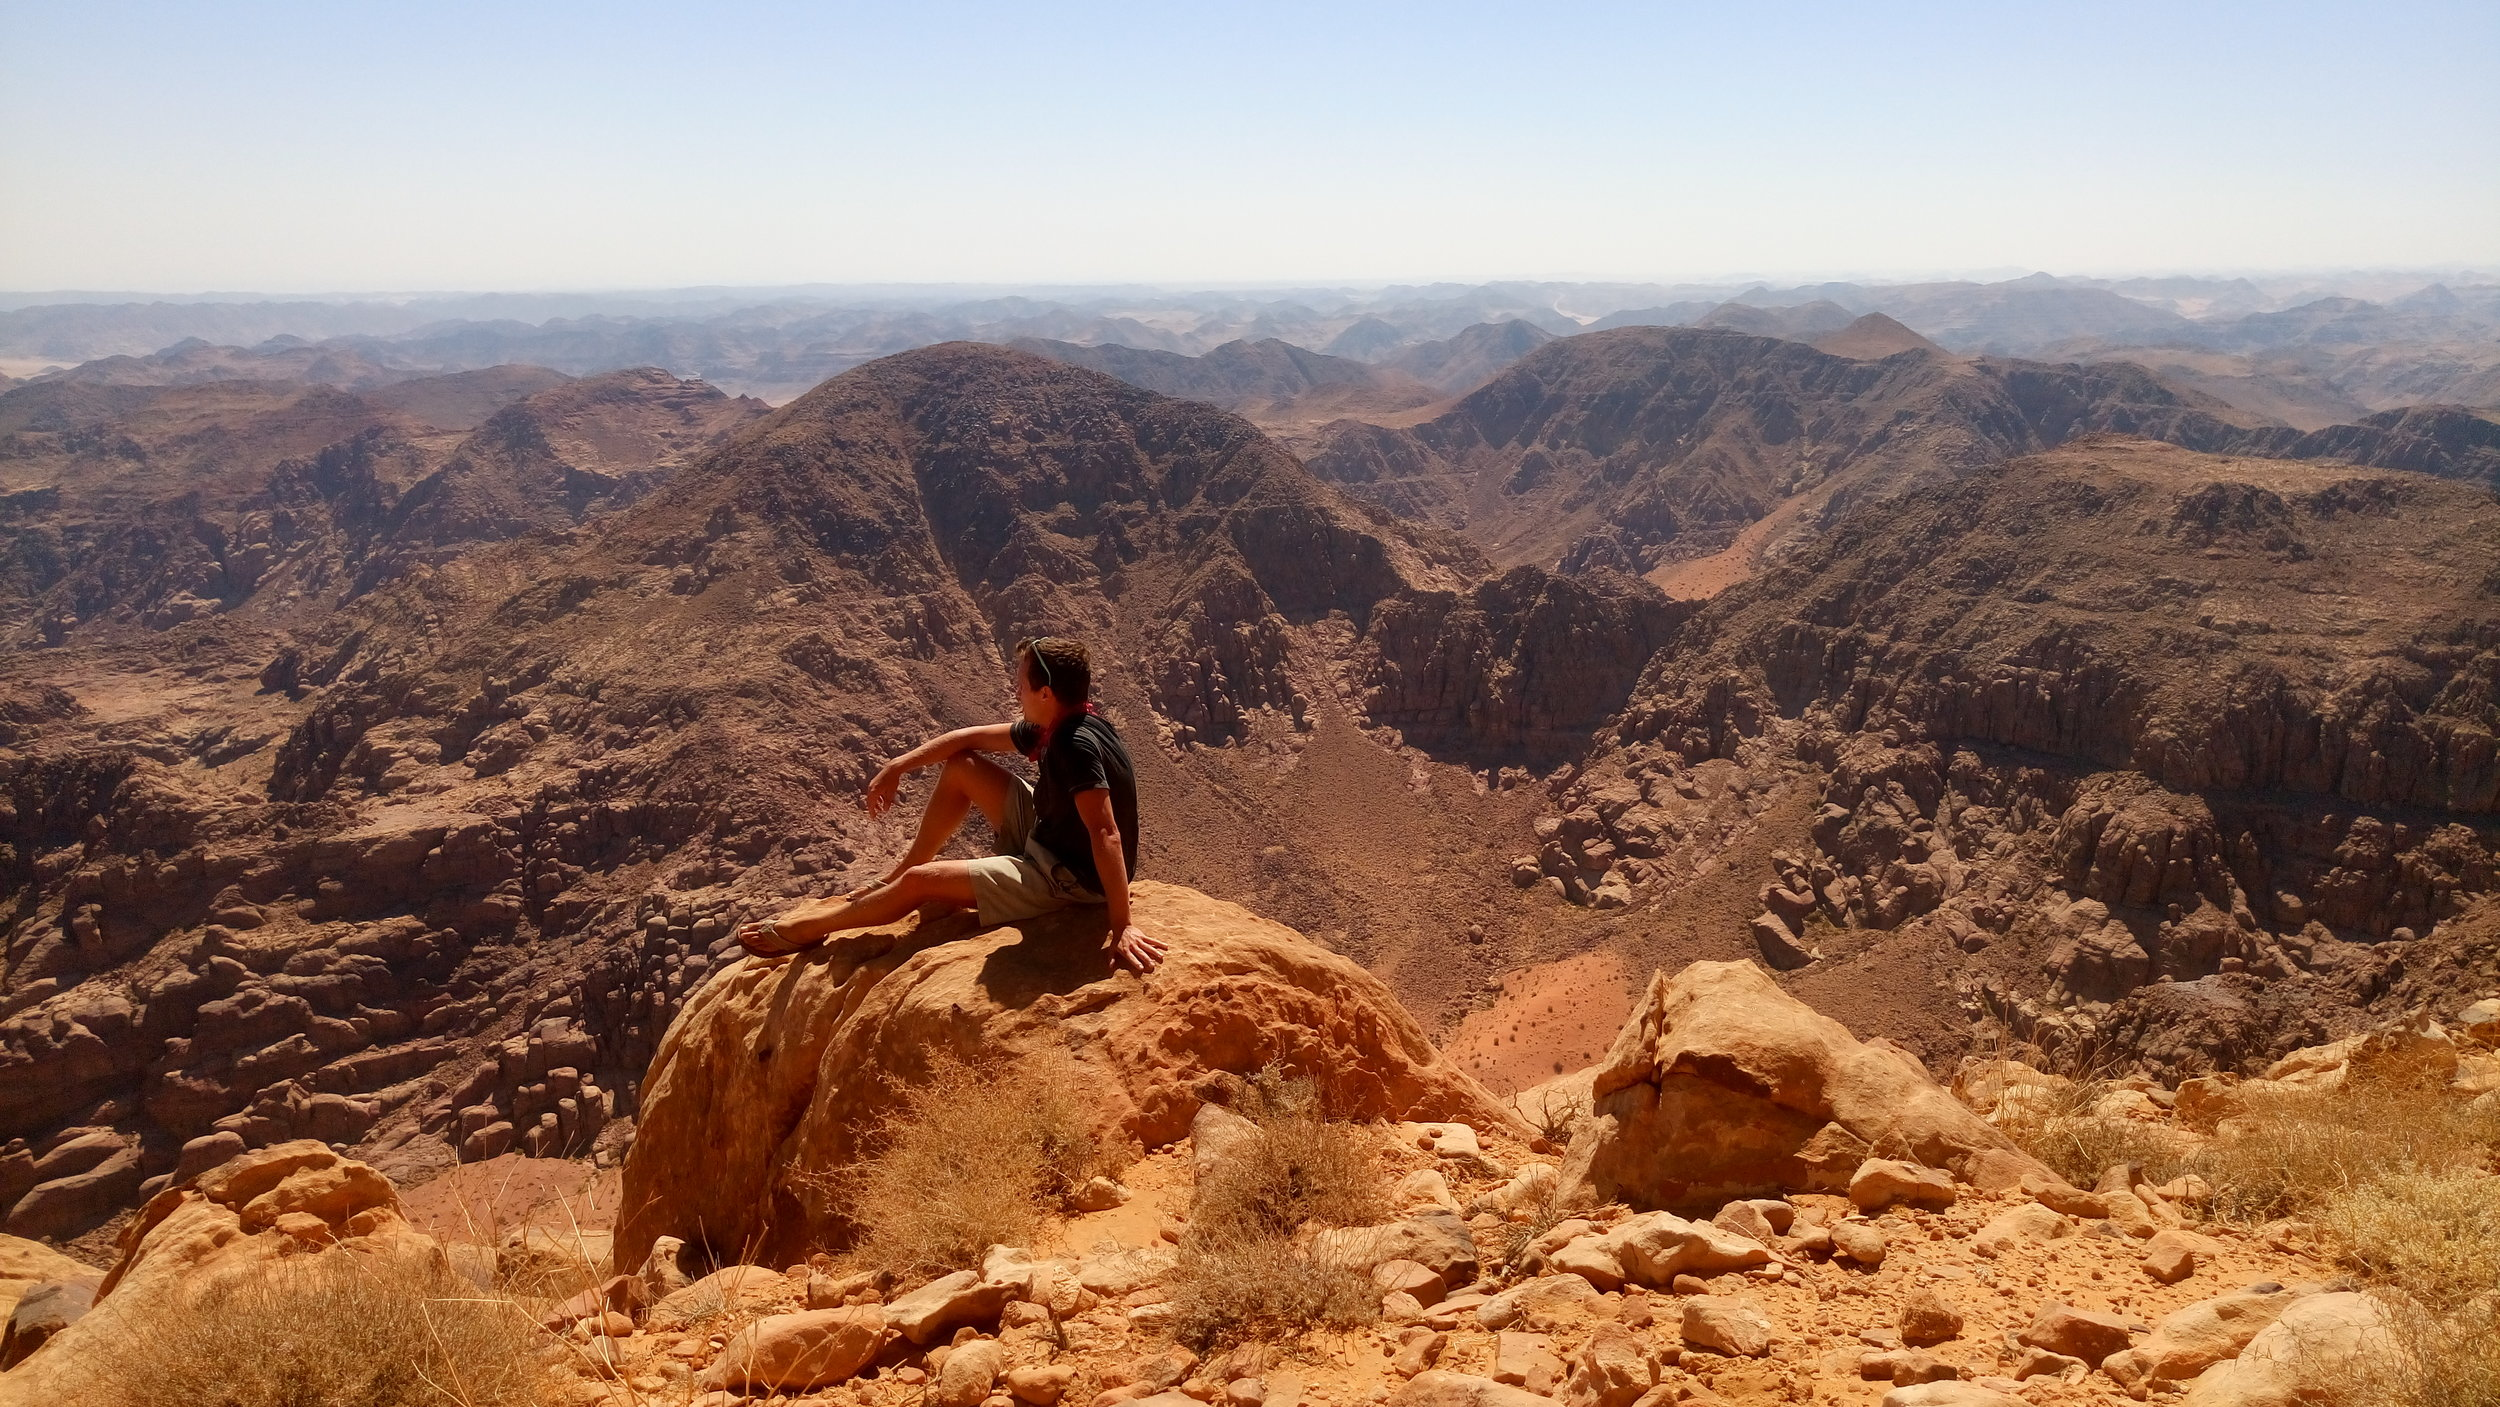 View from the highest point in Jordan. Saudi Arabia in the distance.